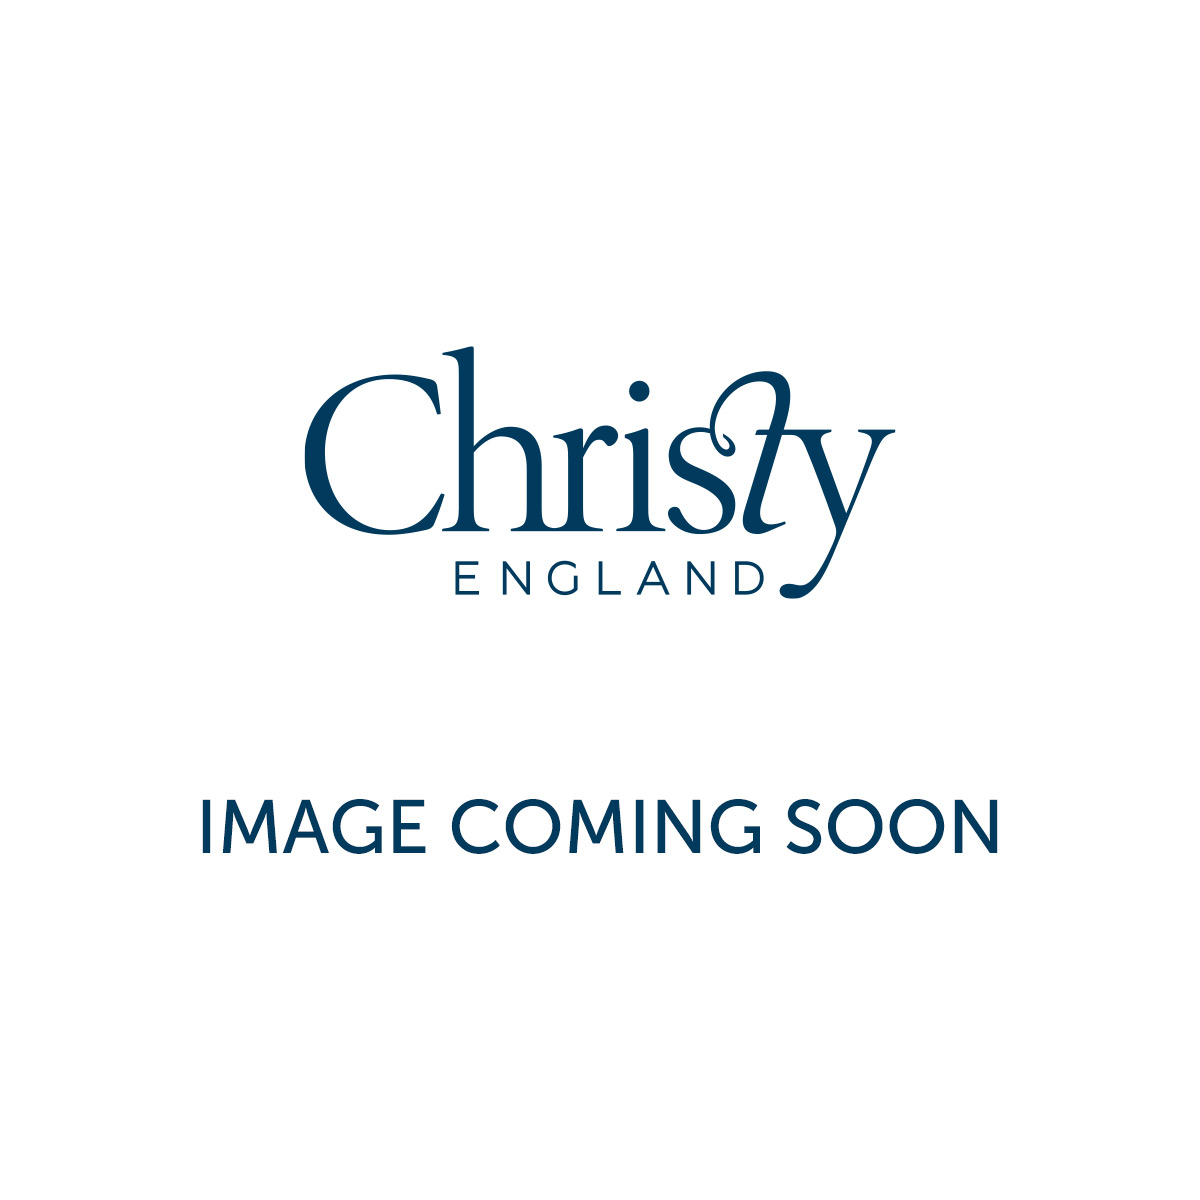 Christy Epoch Bed Linen Charcoal pillows